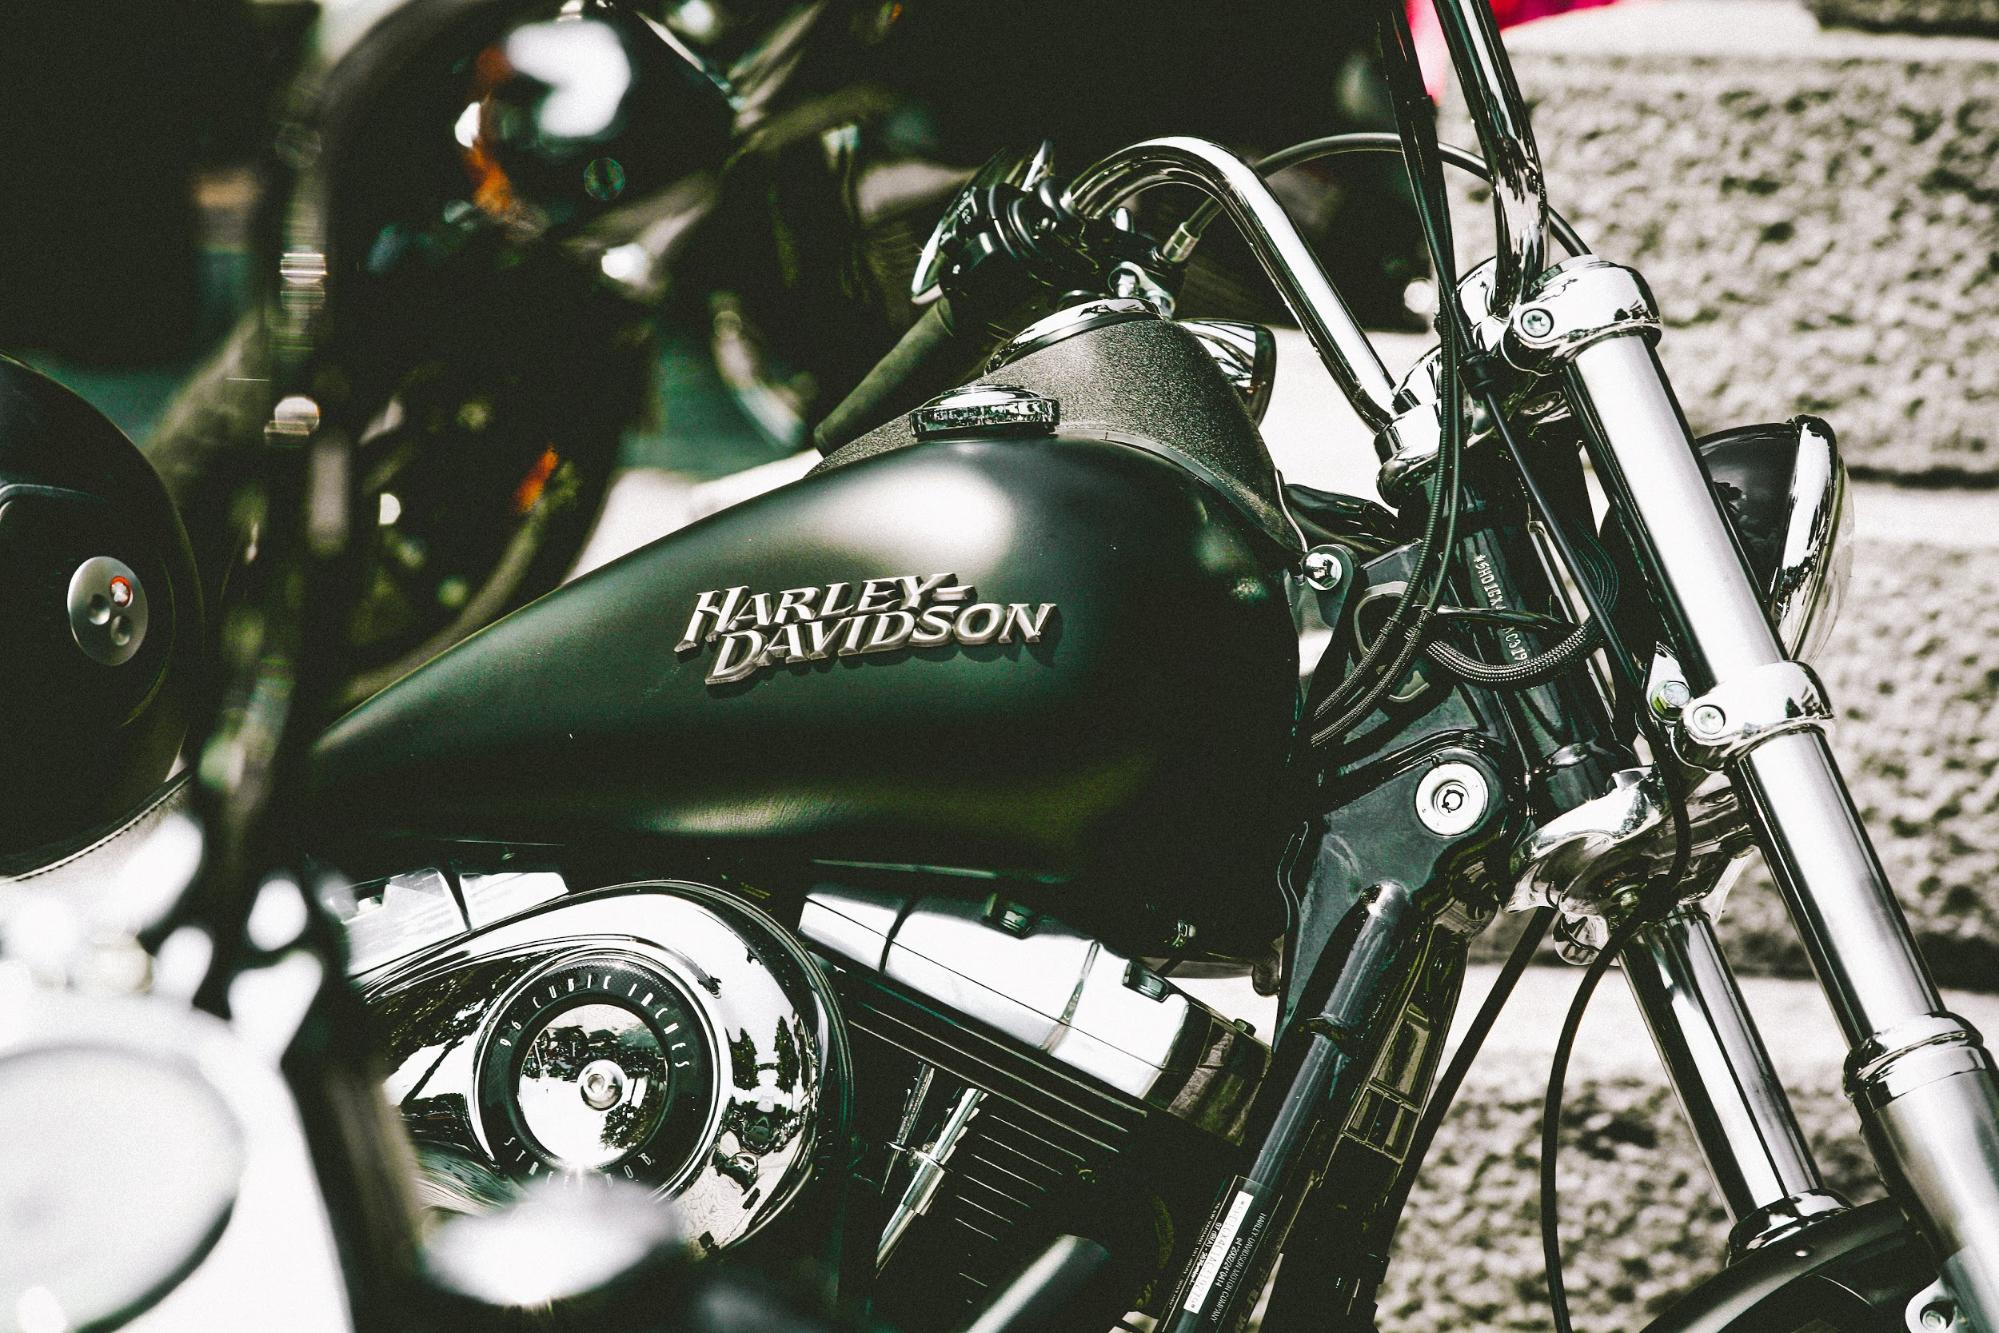 Harley Davidson is an icon of the industry.